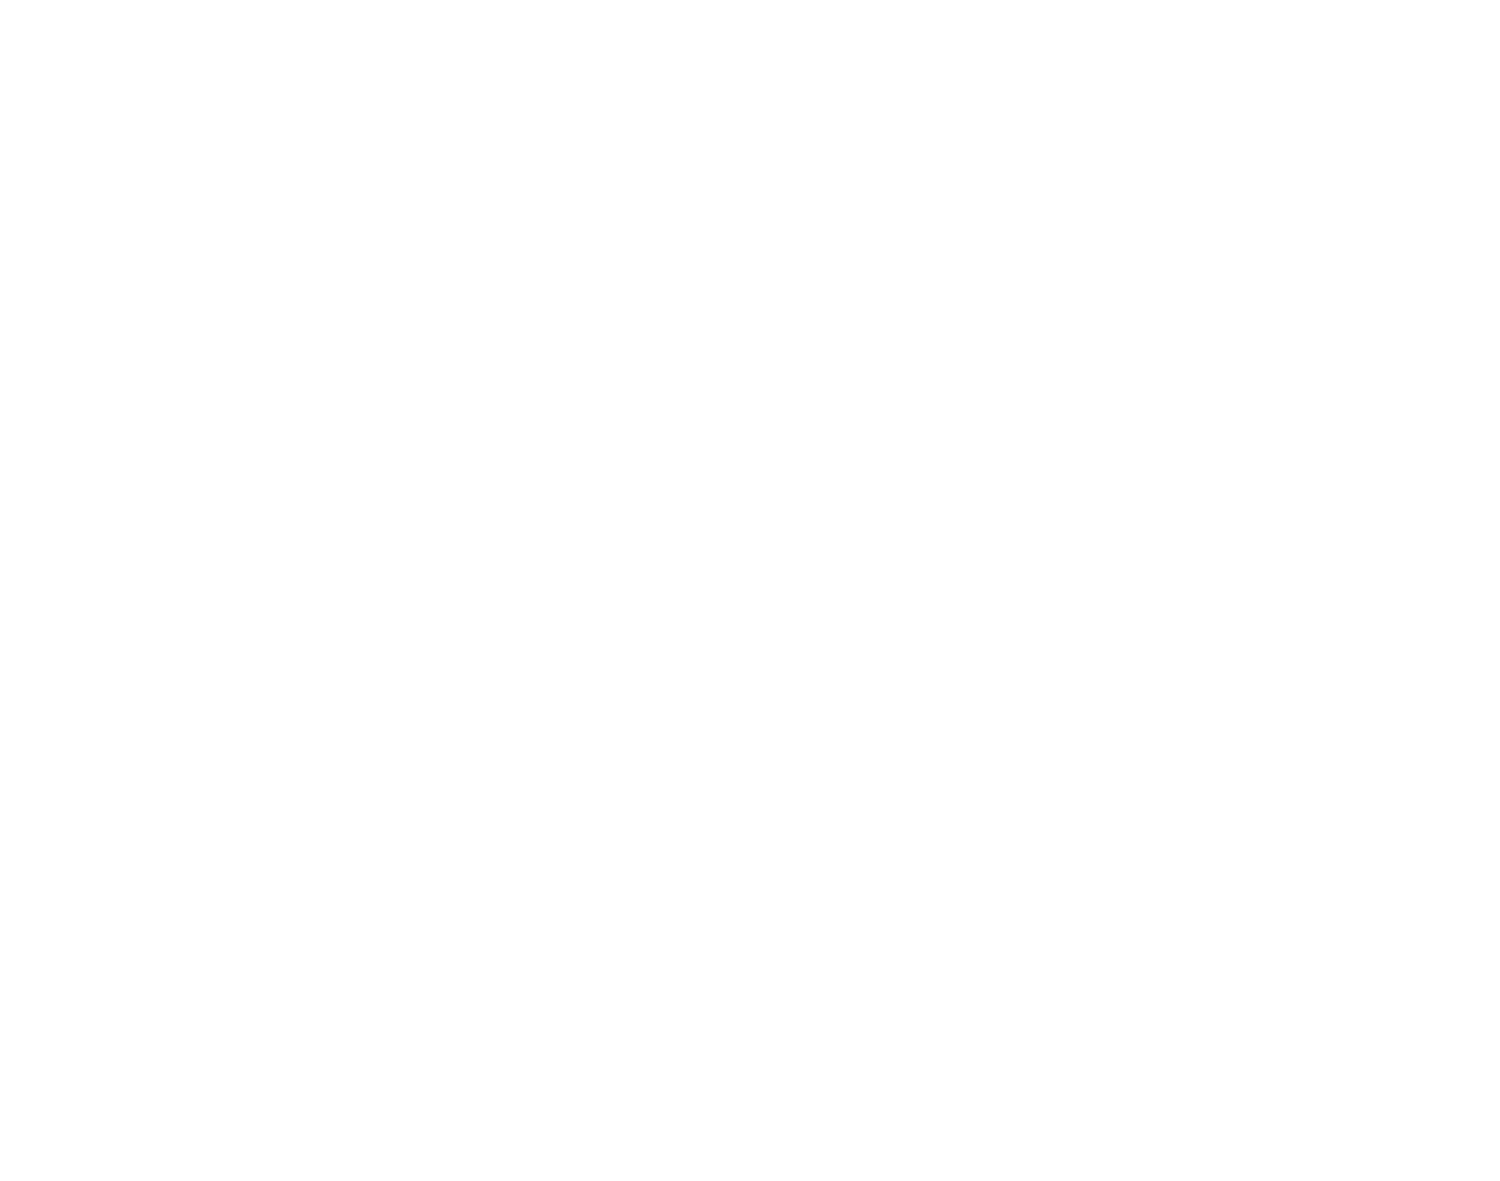 Damrep - Welcome to Amsterdam